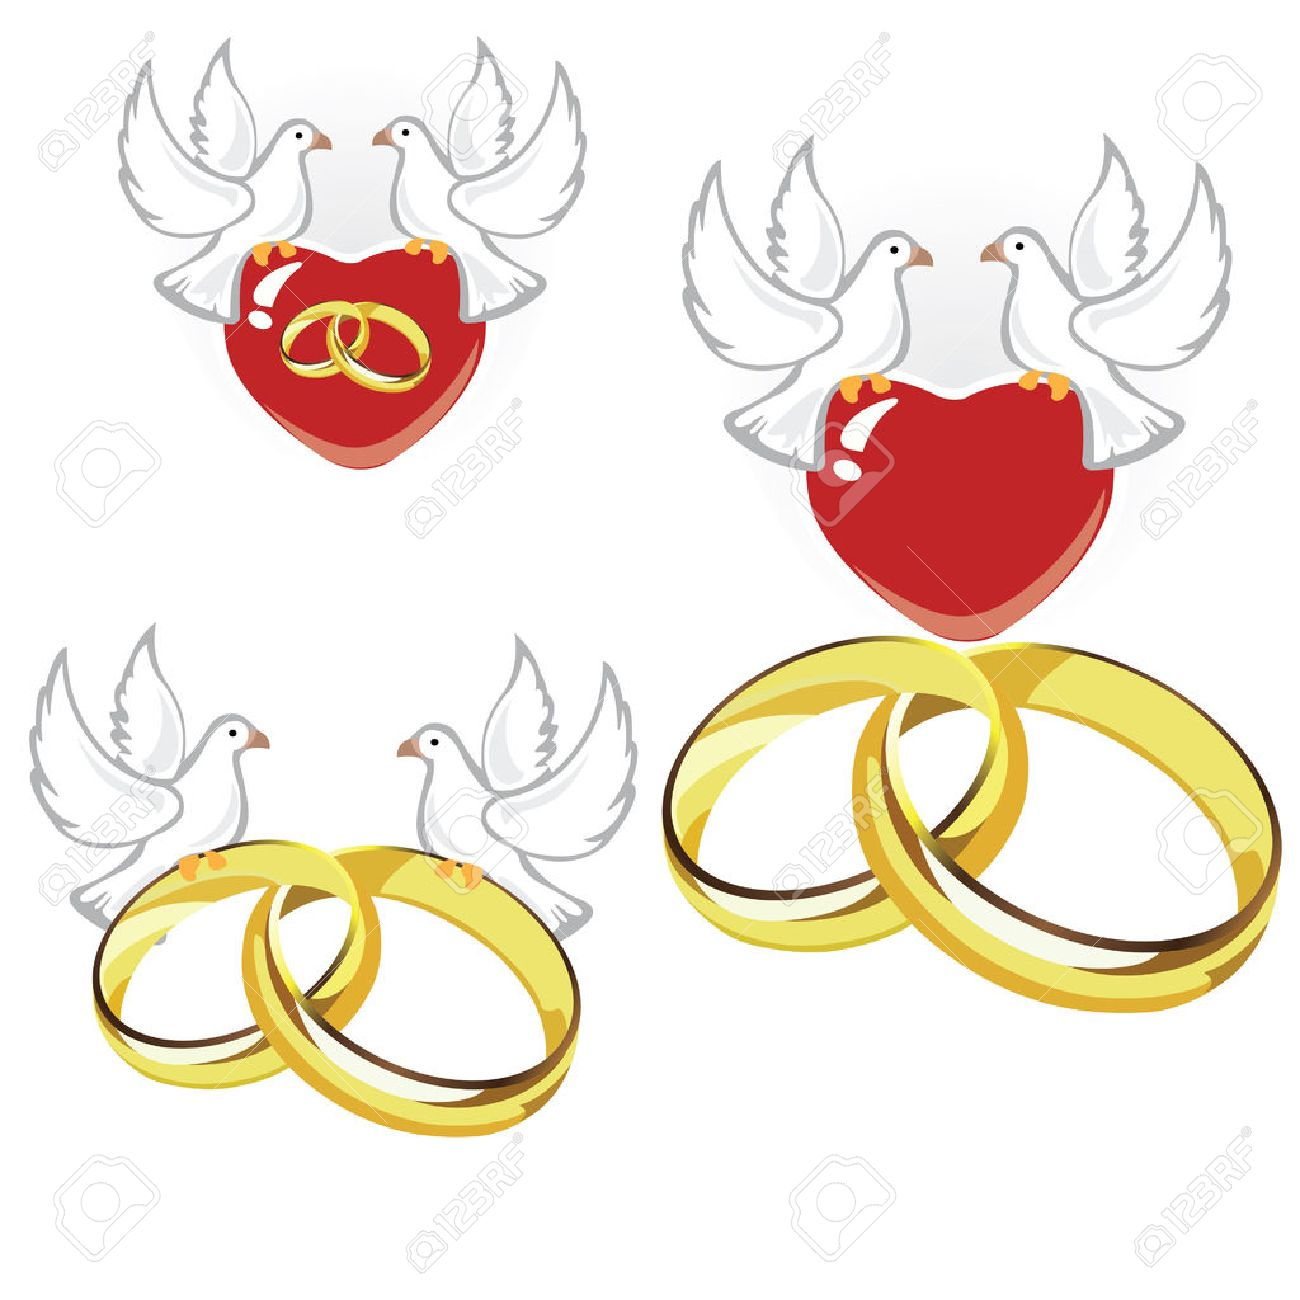 com gclipart wedding ring clipart rings